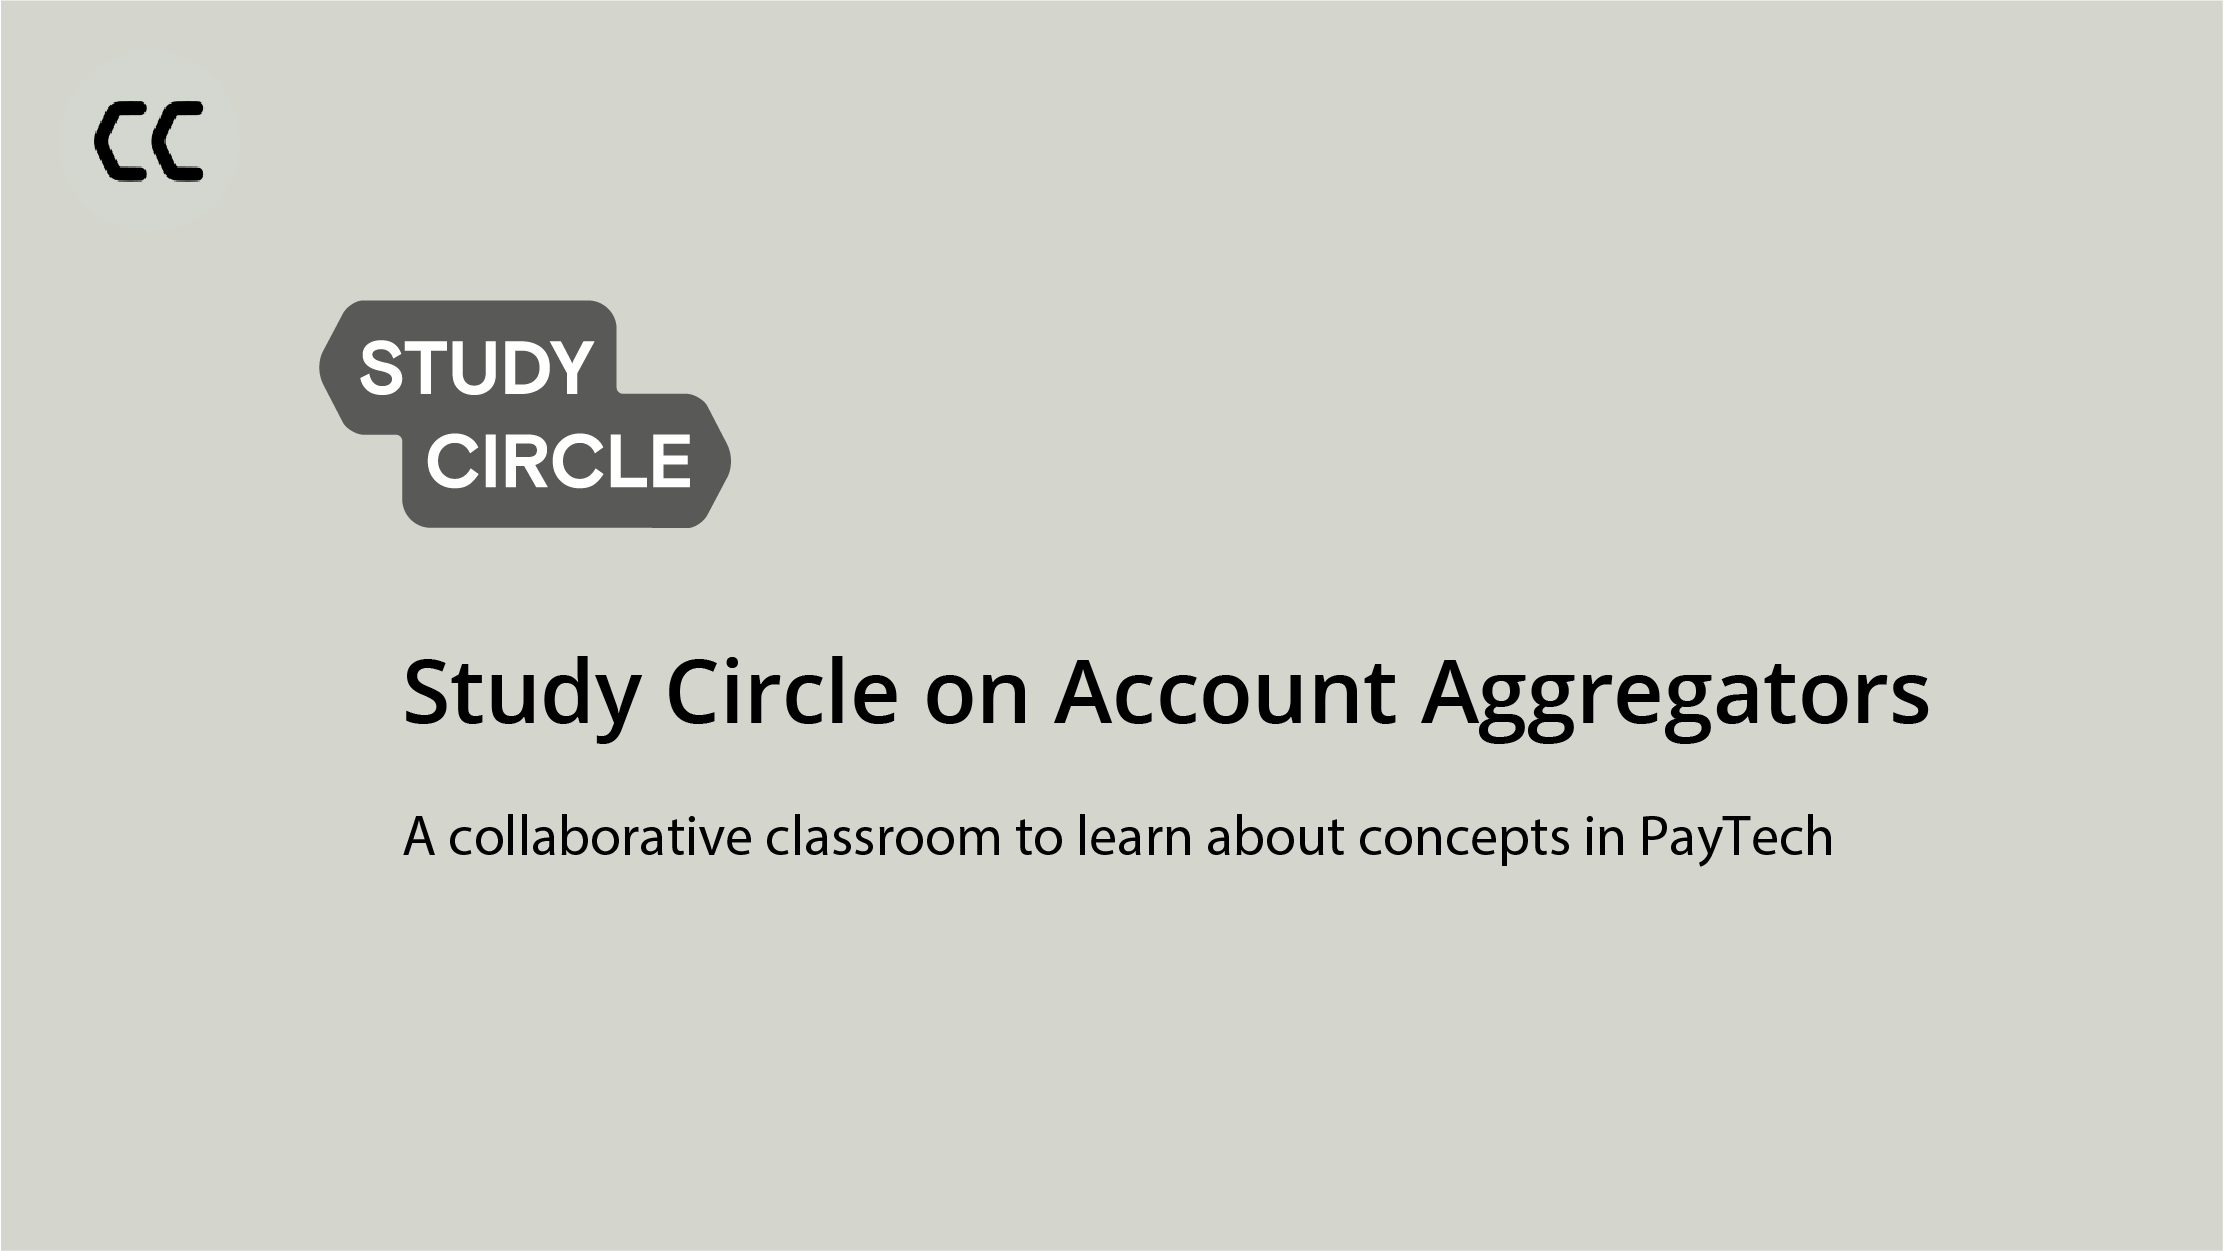 Study Circle on Account Aggregators